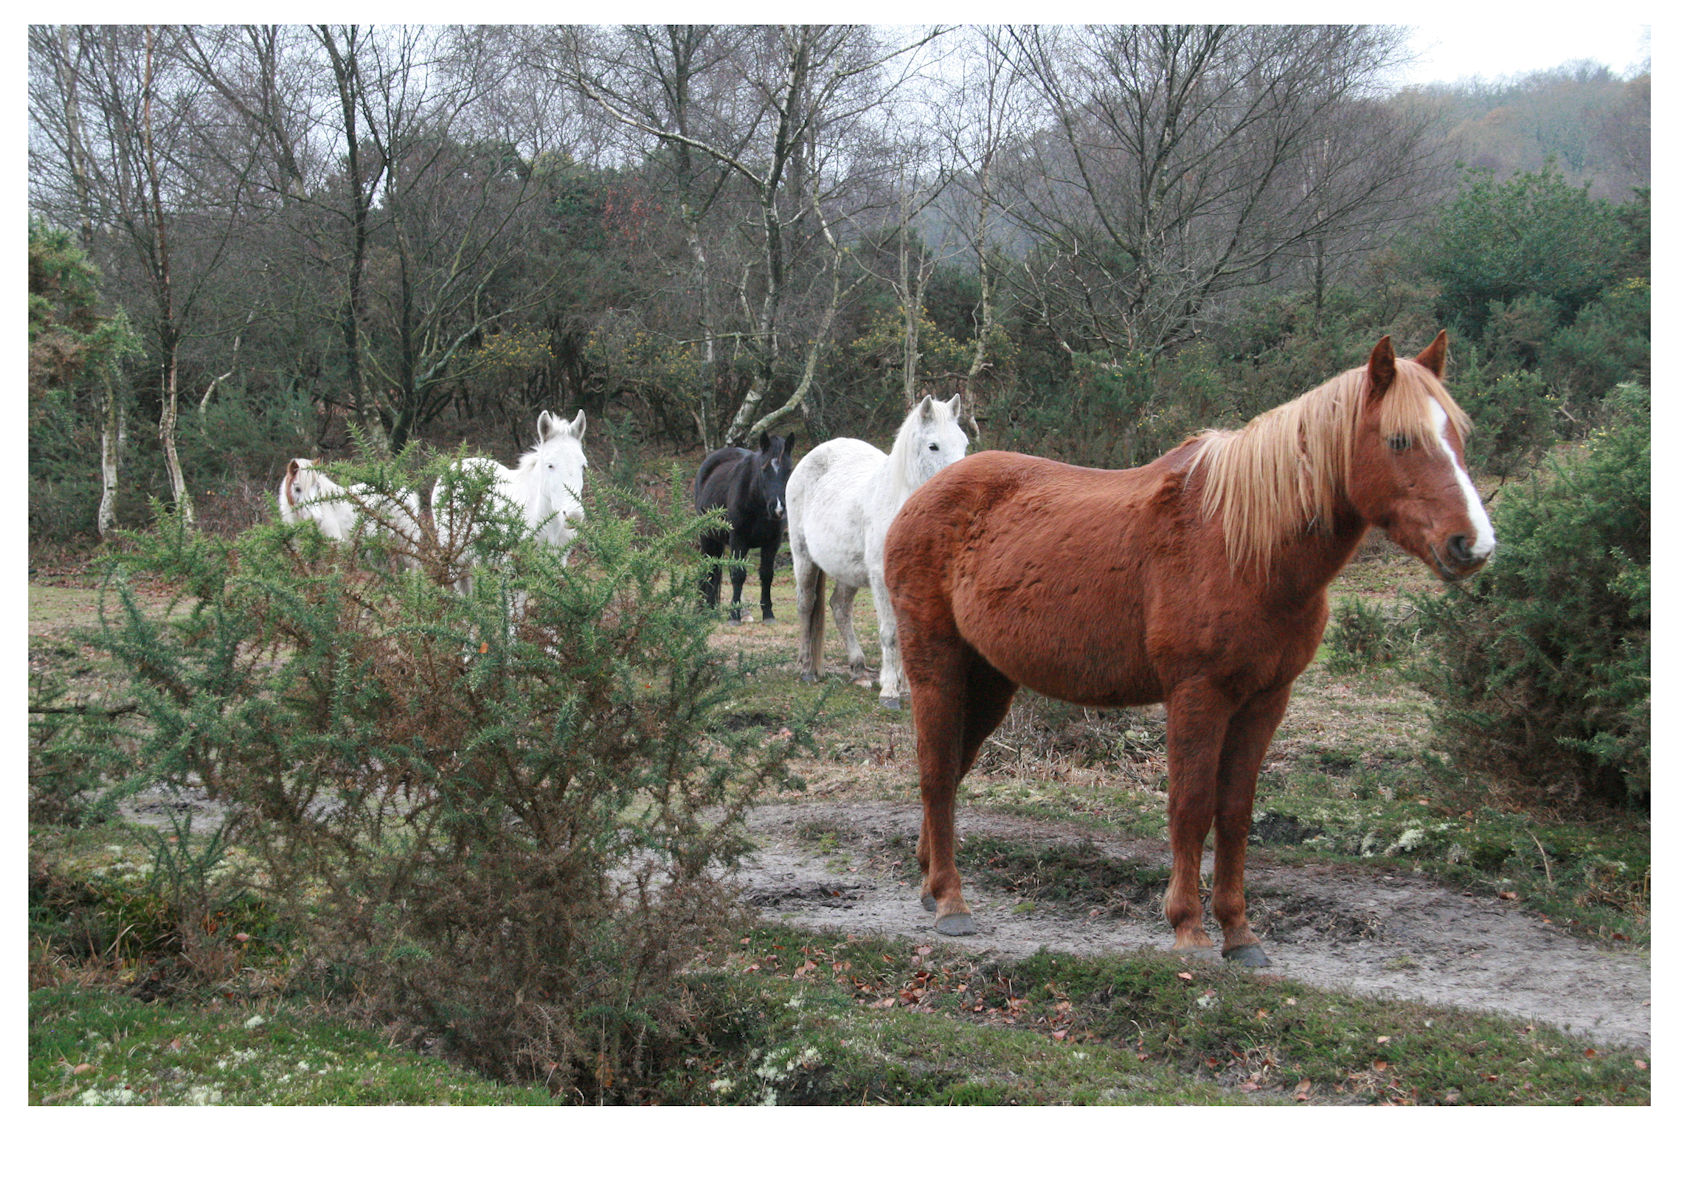 New Forest ponies, living wild near Stagbury Hill, Cadnam Common, New Forest, Hampshire, as seen by Ian West on a rainy day, 30th November 2020